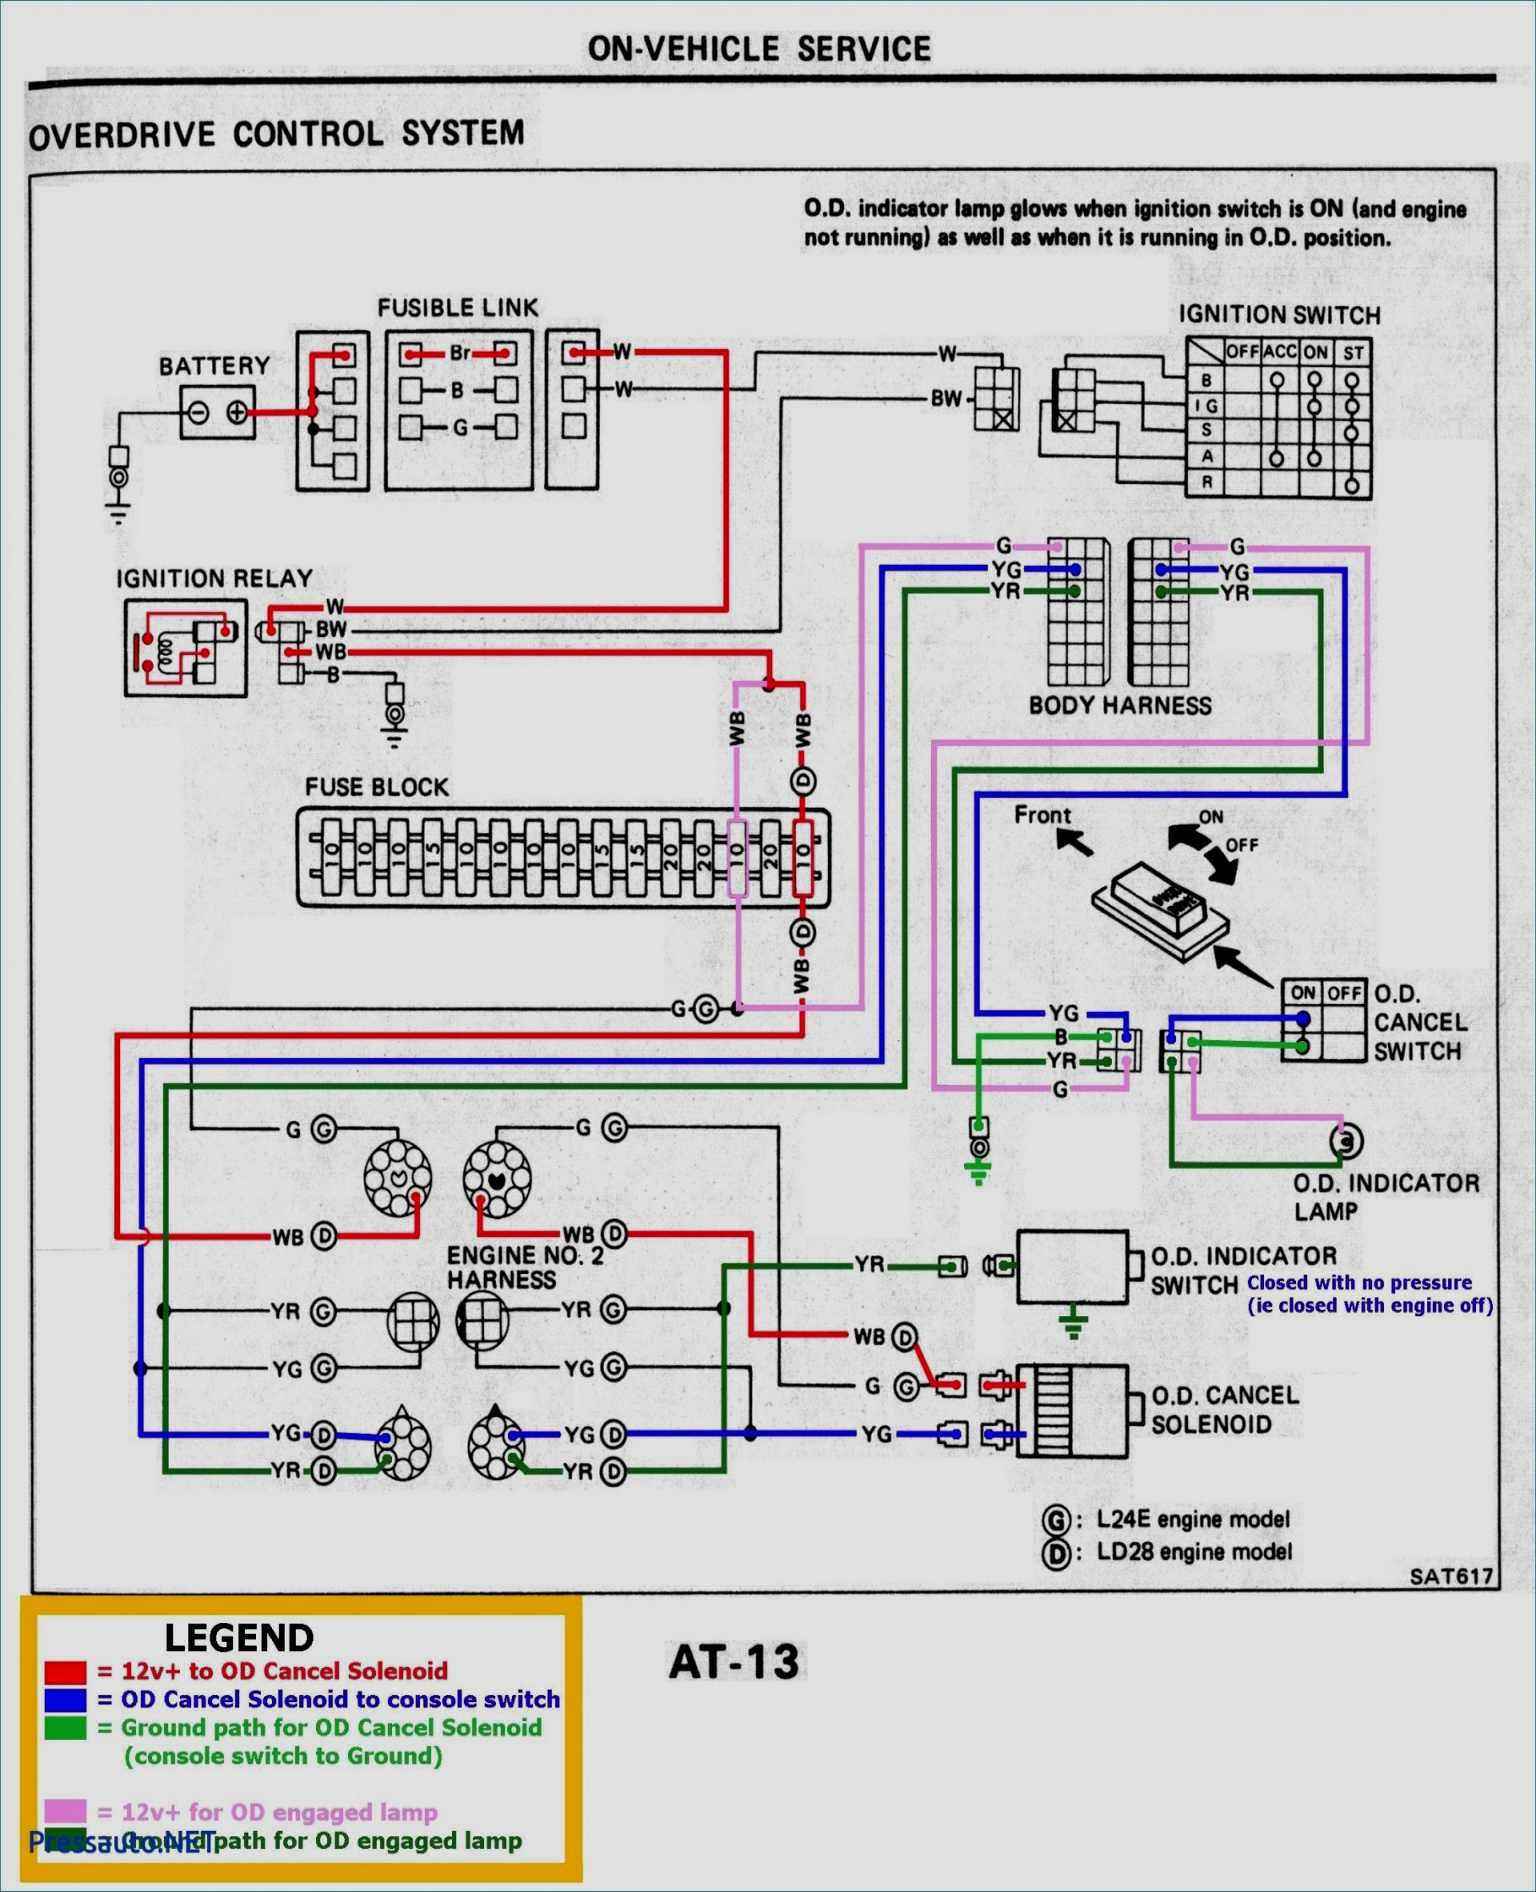 [DIAGRAM_4FR]  Lark Wiring Diagram - Honda Passport Fuse Box Diagram for Wiring Diagram  Schematics | Lark Wiring Diagram |  | Wiring Diagram Schematics